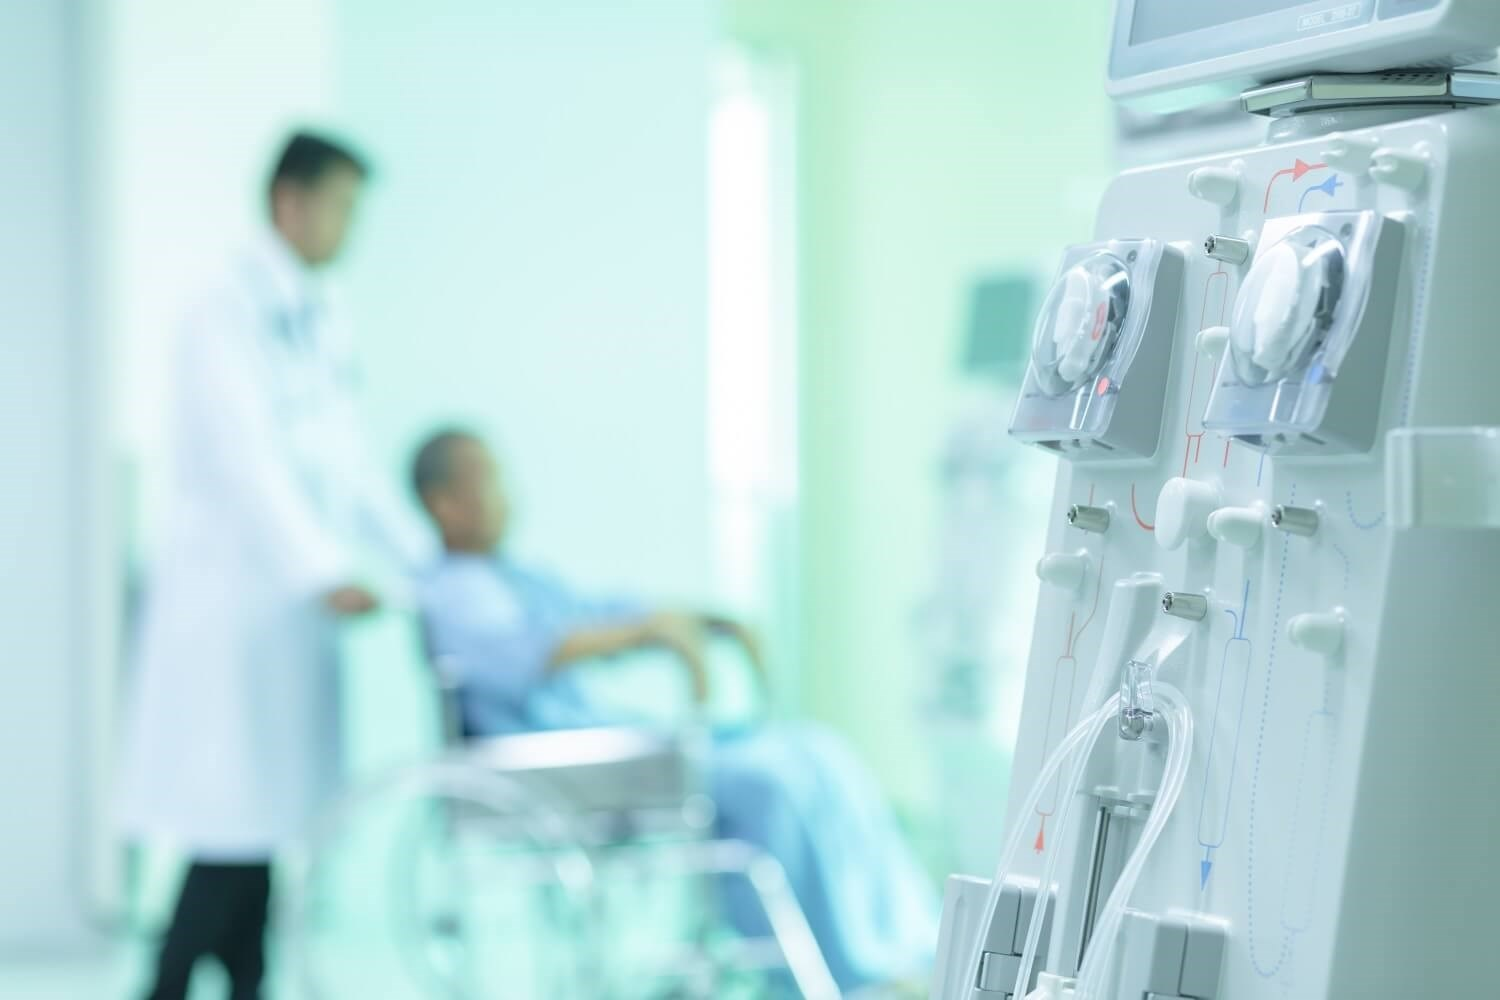 Many are calling for standard dialysis coverage for undocumented immigrants with end-stage renal disease.